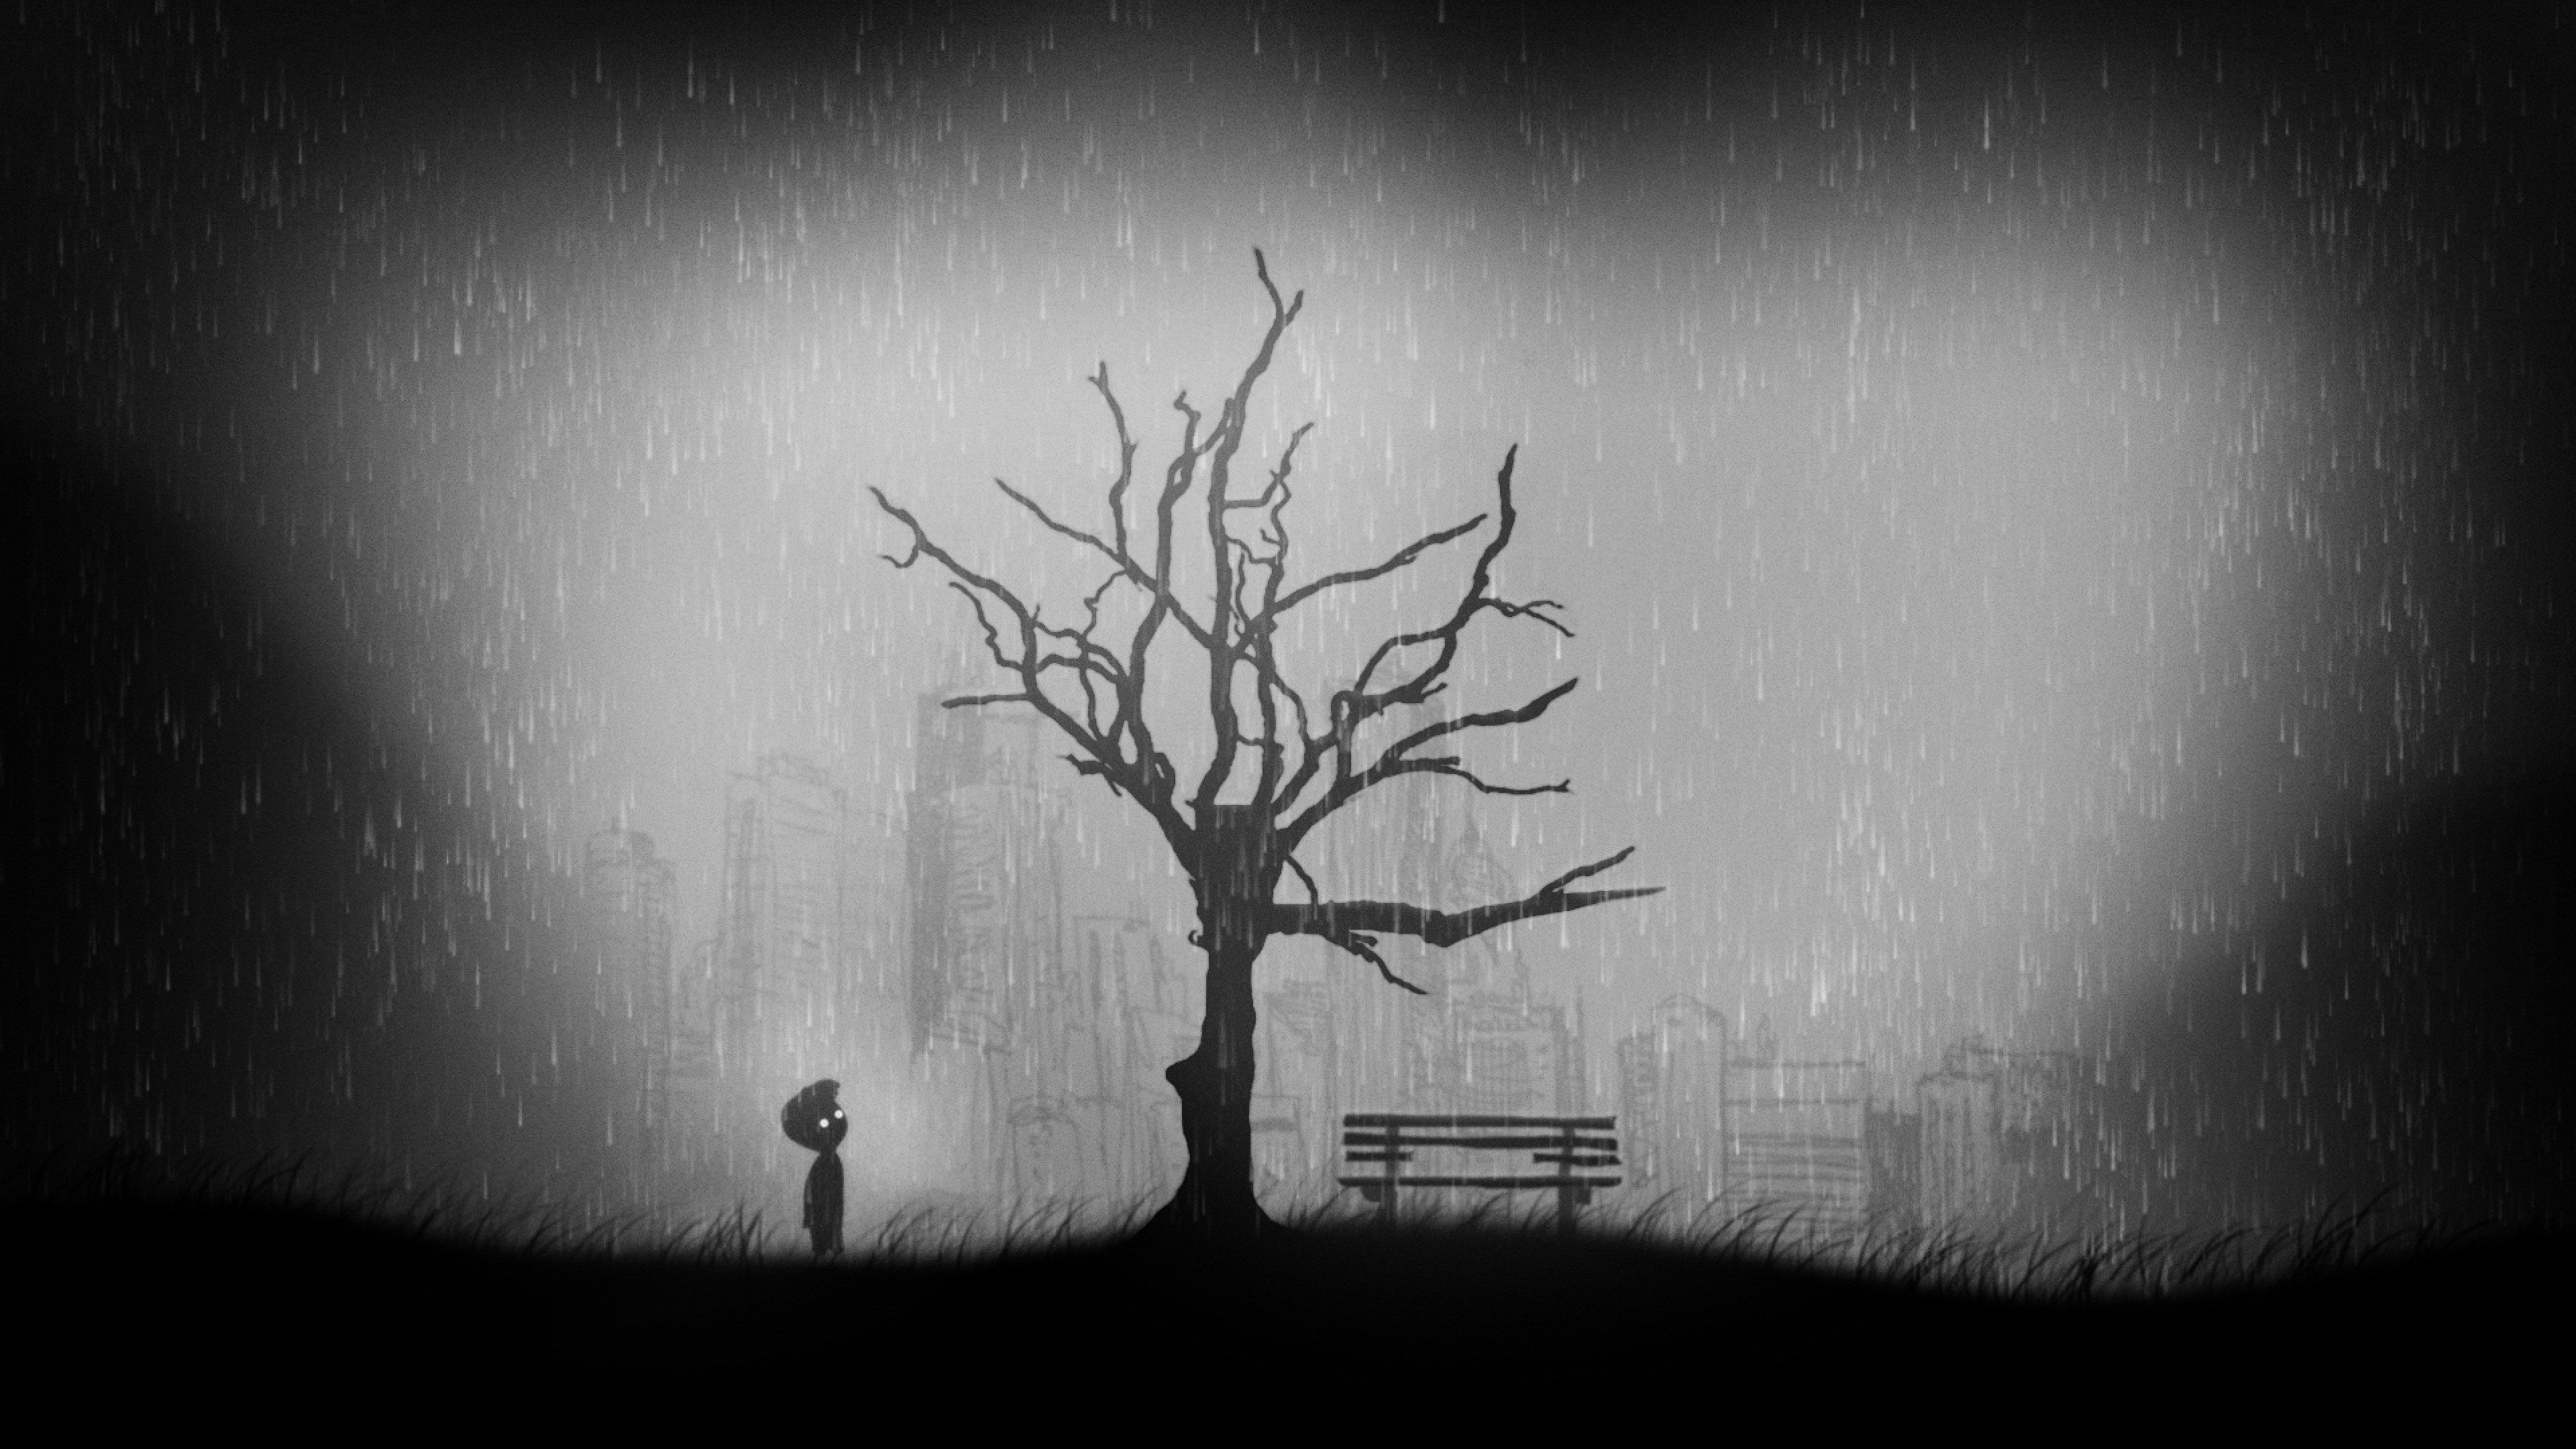 3840x2160 Limbo 4k Desktop Wallpaper Hd Quality Wallpaper